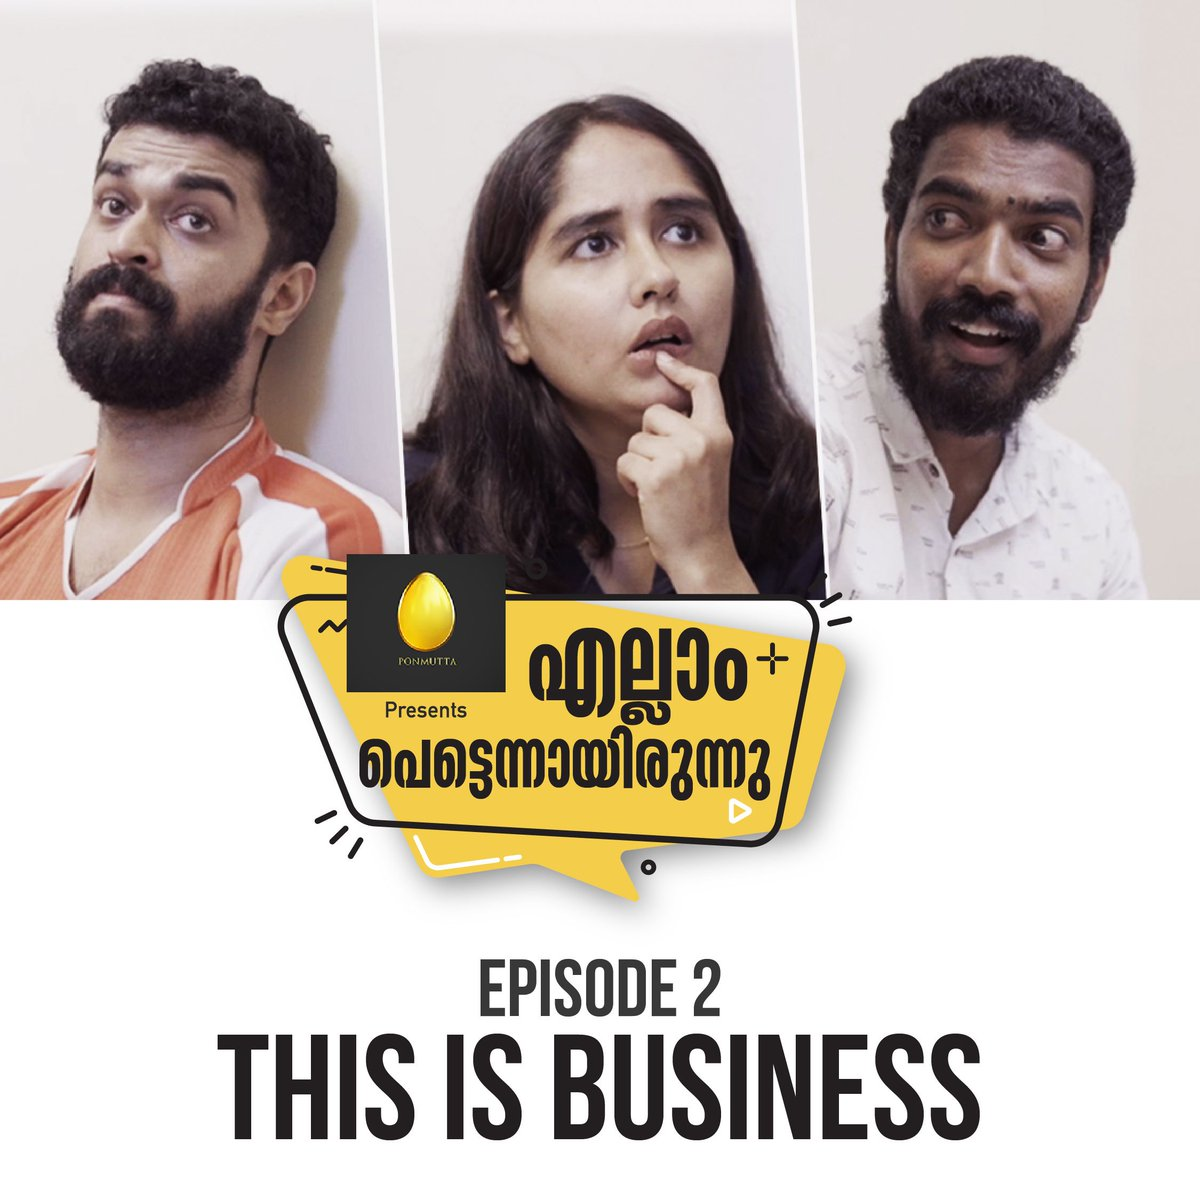 Watch the first episode of our Web series.  https://youtu.be/Gqep7_HGZQQ  #ponmutta #webseries #miniwebseries #comedy  #comics #funtimes #Funniestmemes #lockdown  #comedyvideo #malayalamcomedy #nw #COVID #COVID19India  Subscribe to our Youtube channel to watch more funny videos.pic.twitter.com/sdsoAF05nd